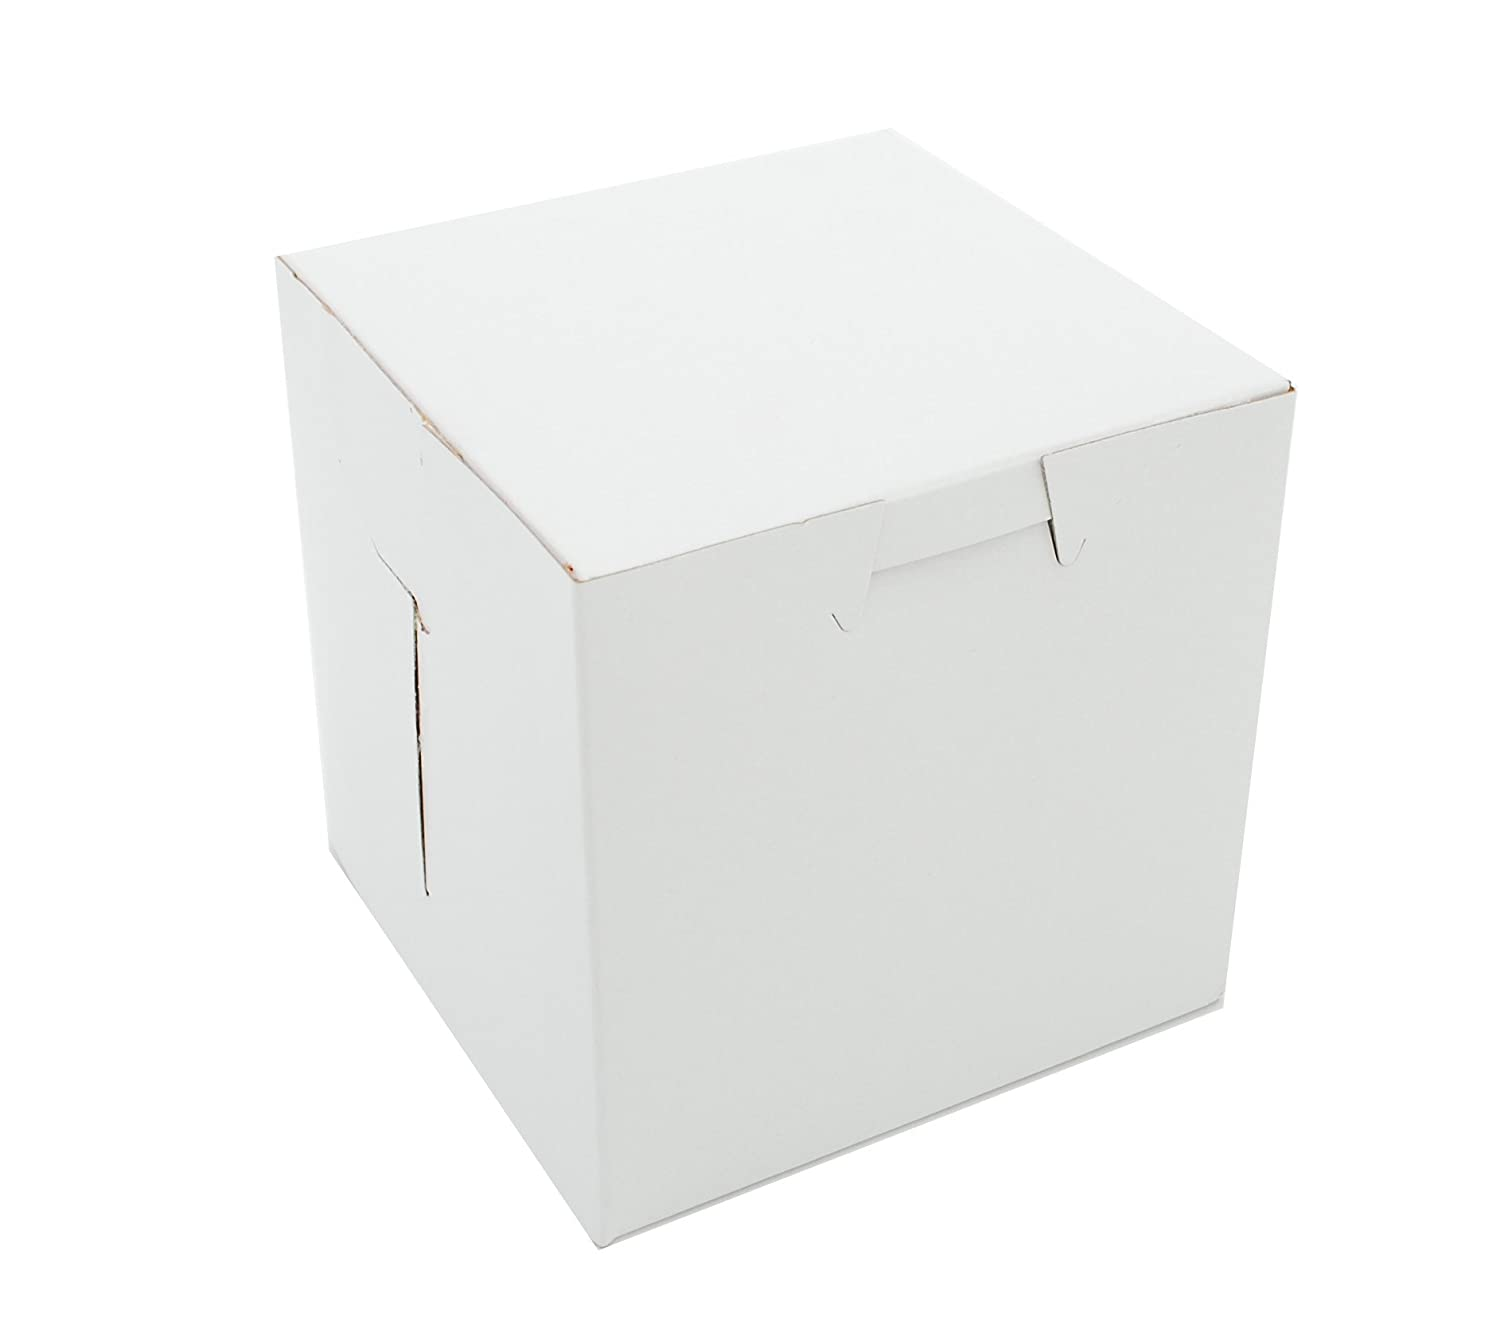 Southern Champion Tray 0907 Premium Clay Coated Kraft Paperboard White Non-Window Lock Corner Bakery Box, 4